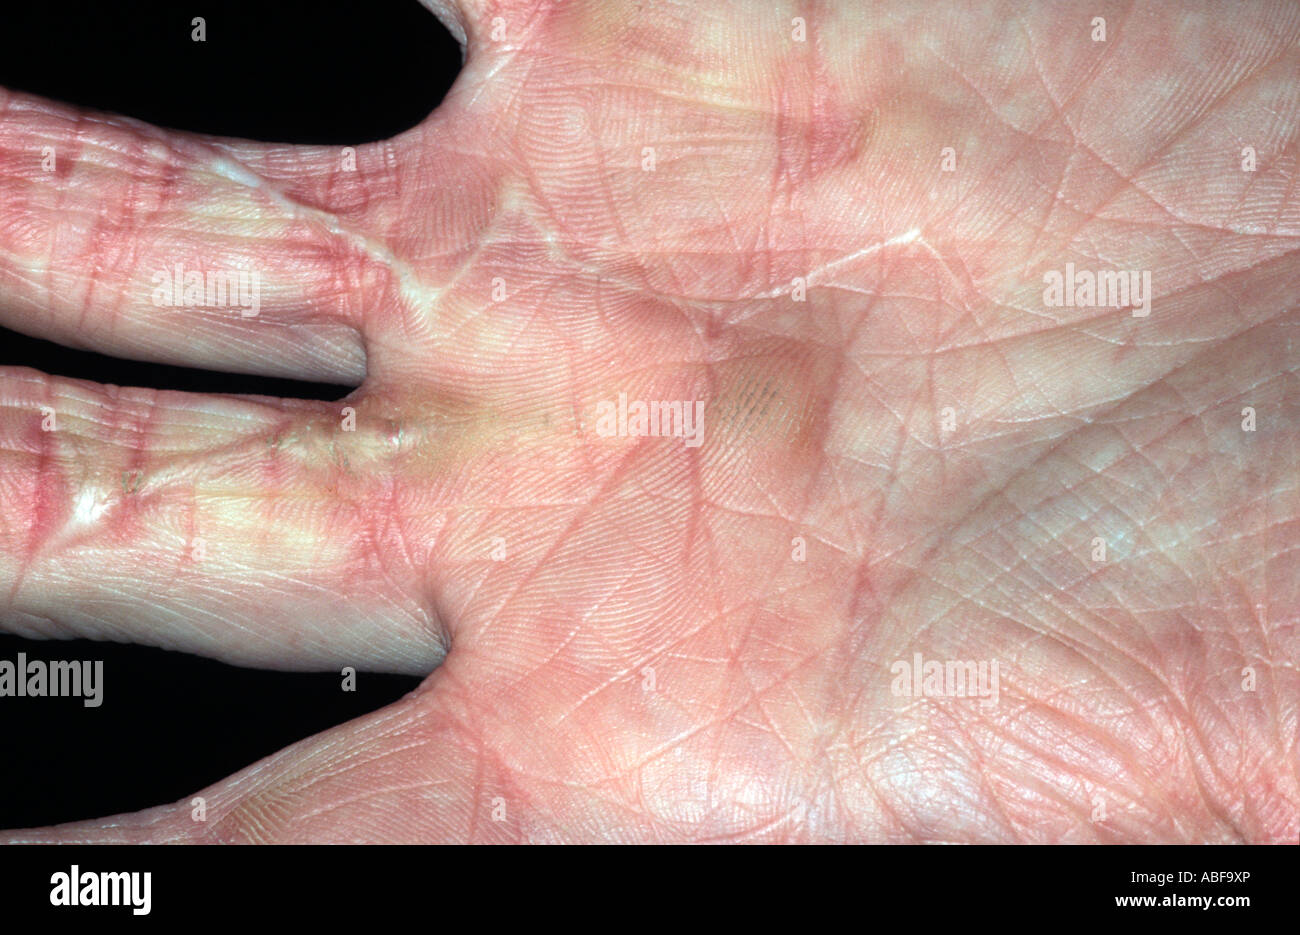 scars on hand following laceration showing some contraction - Stock Image